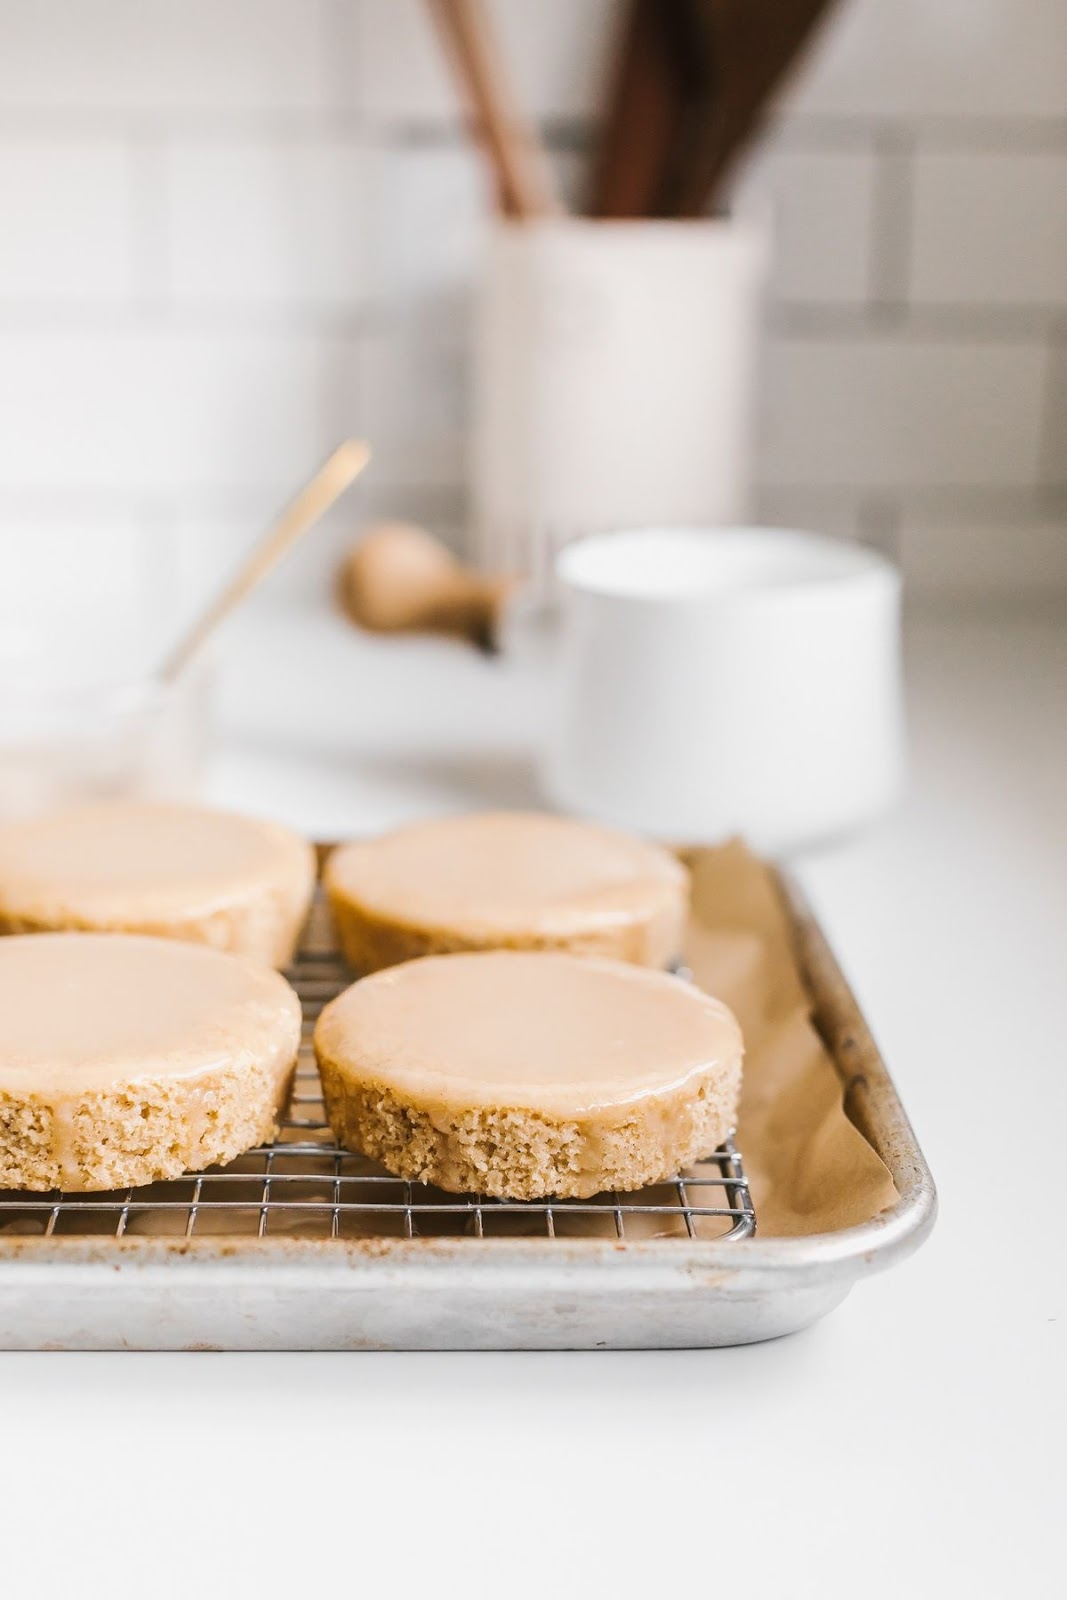 Weekend Favorites : Grapefruit Cakes & Glaze by Kitchen Scraps